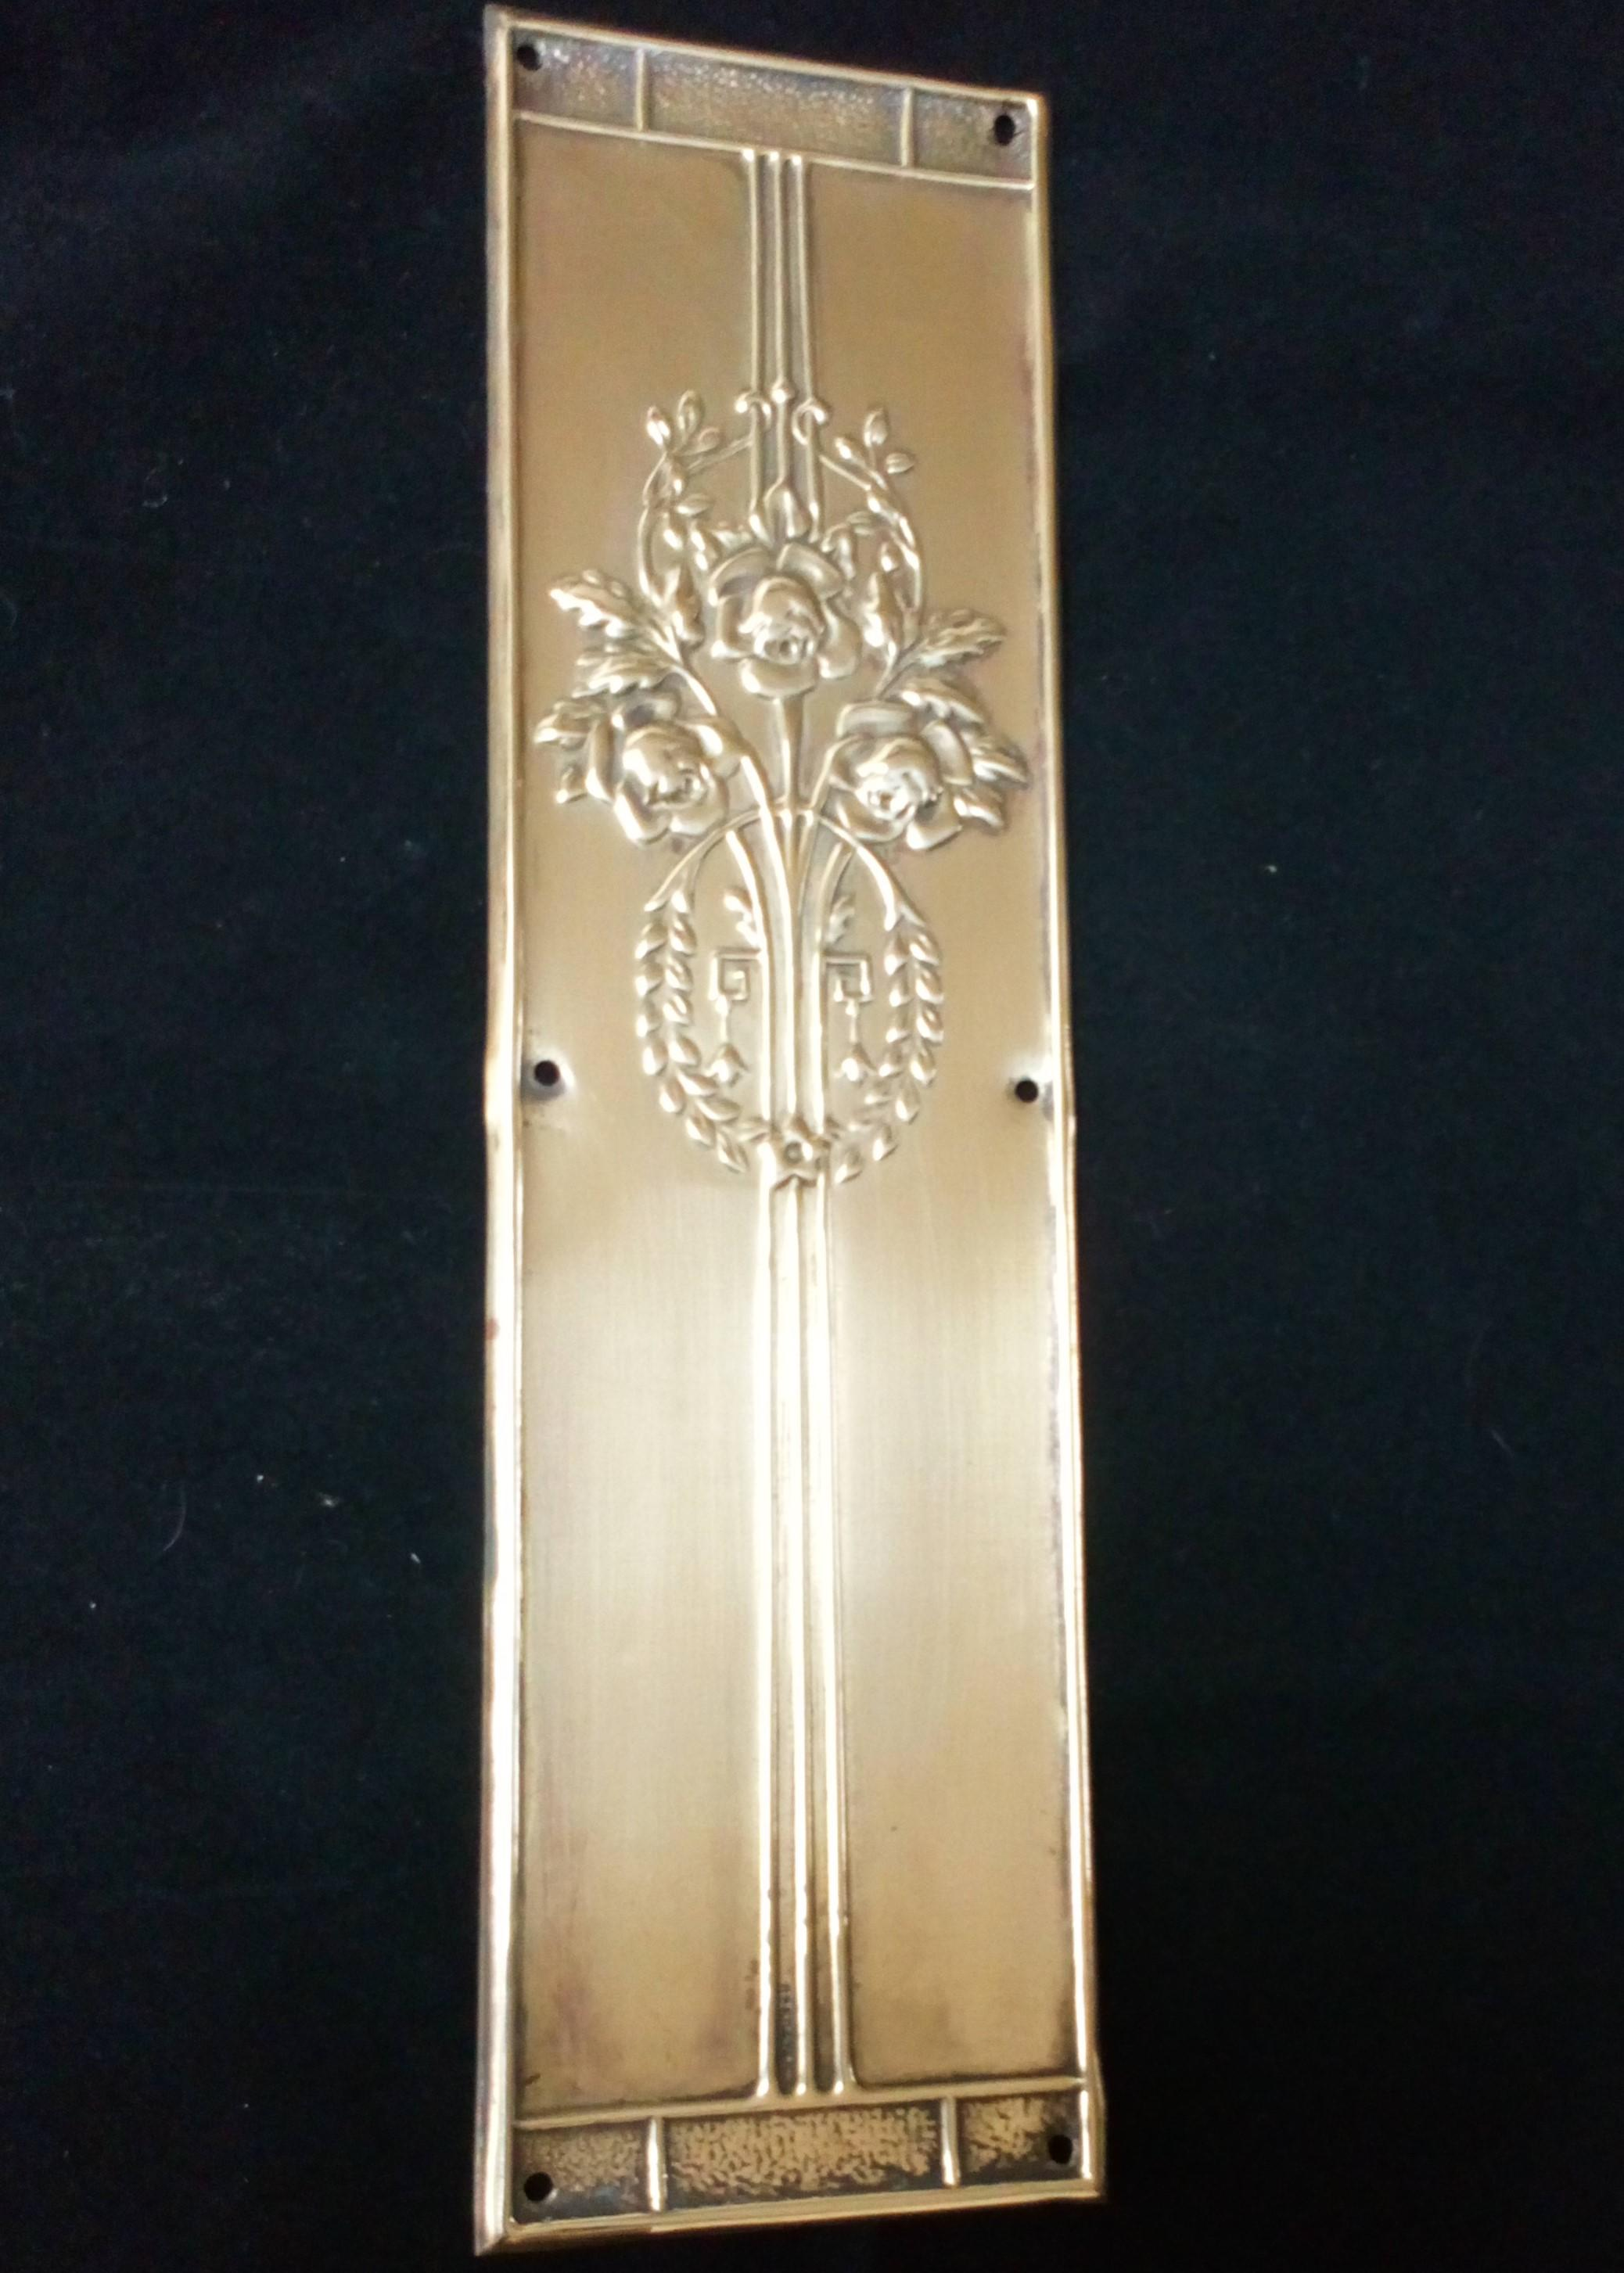 An antique Art Nouveau Pressed Brass finger plate for a door decorated with Glasgow Roses in original antique condition circa 1910 registered design number 604745.